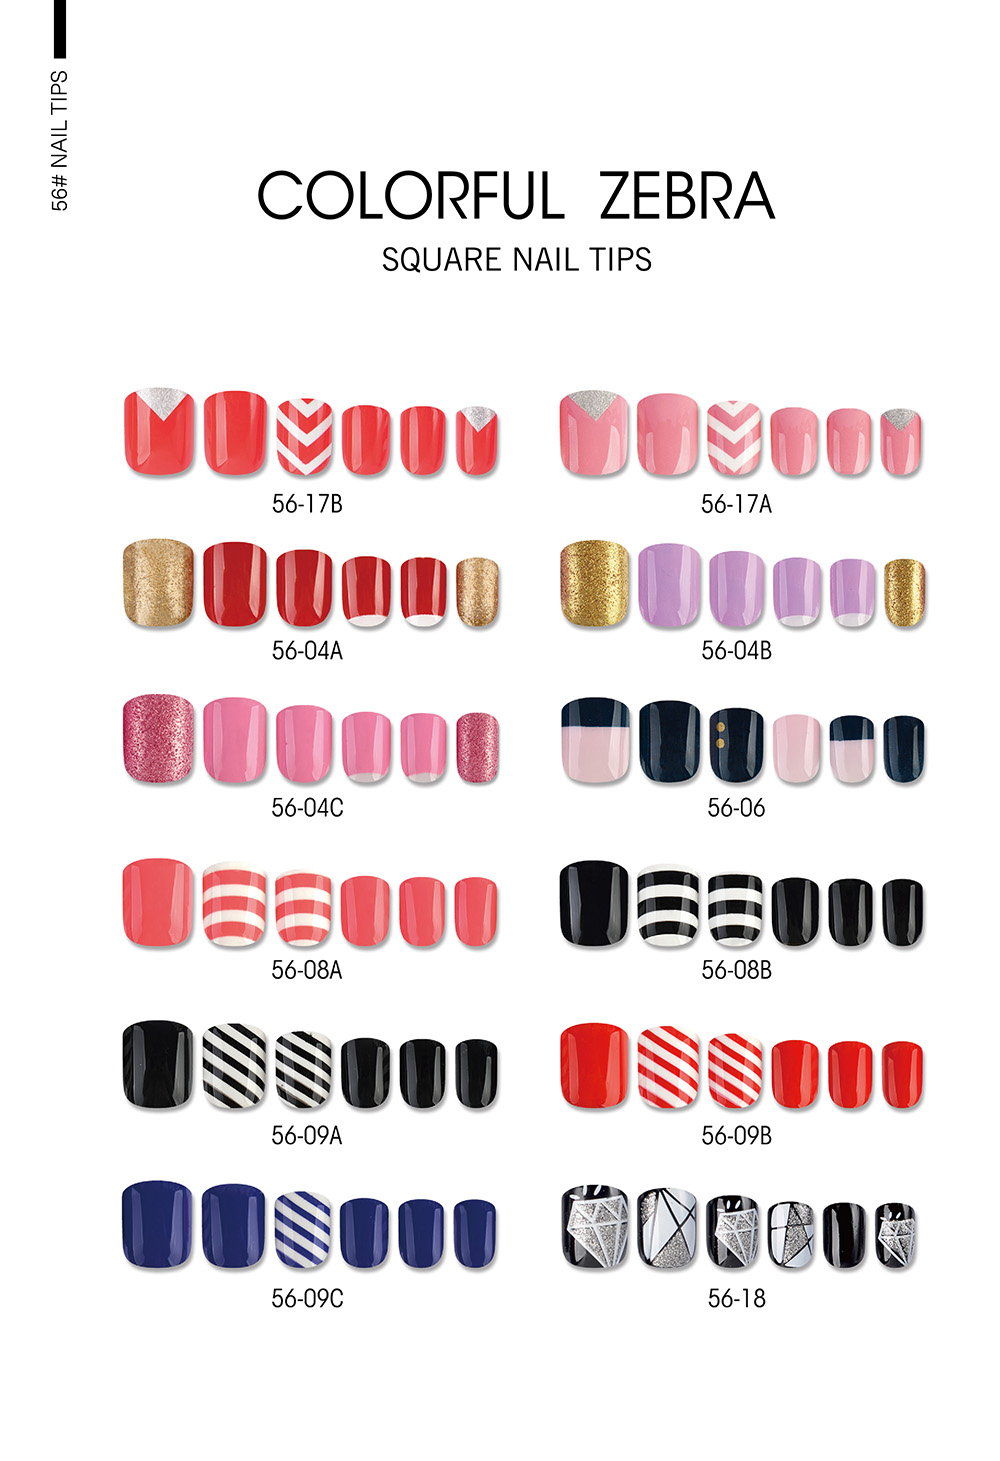 ZEBRA COLOURFUL TIPS SQUARE NAIL